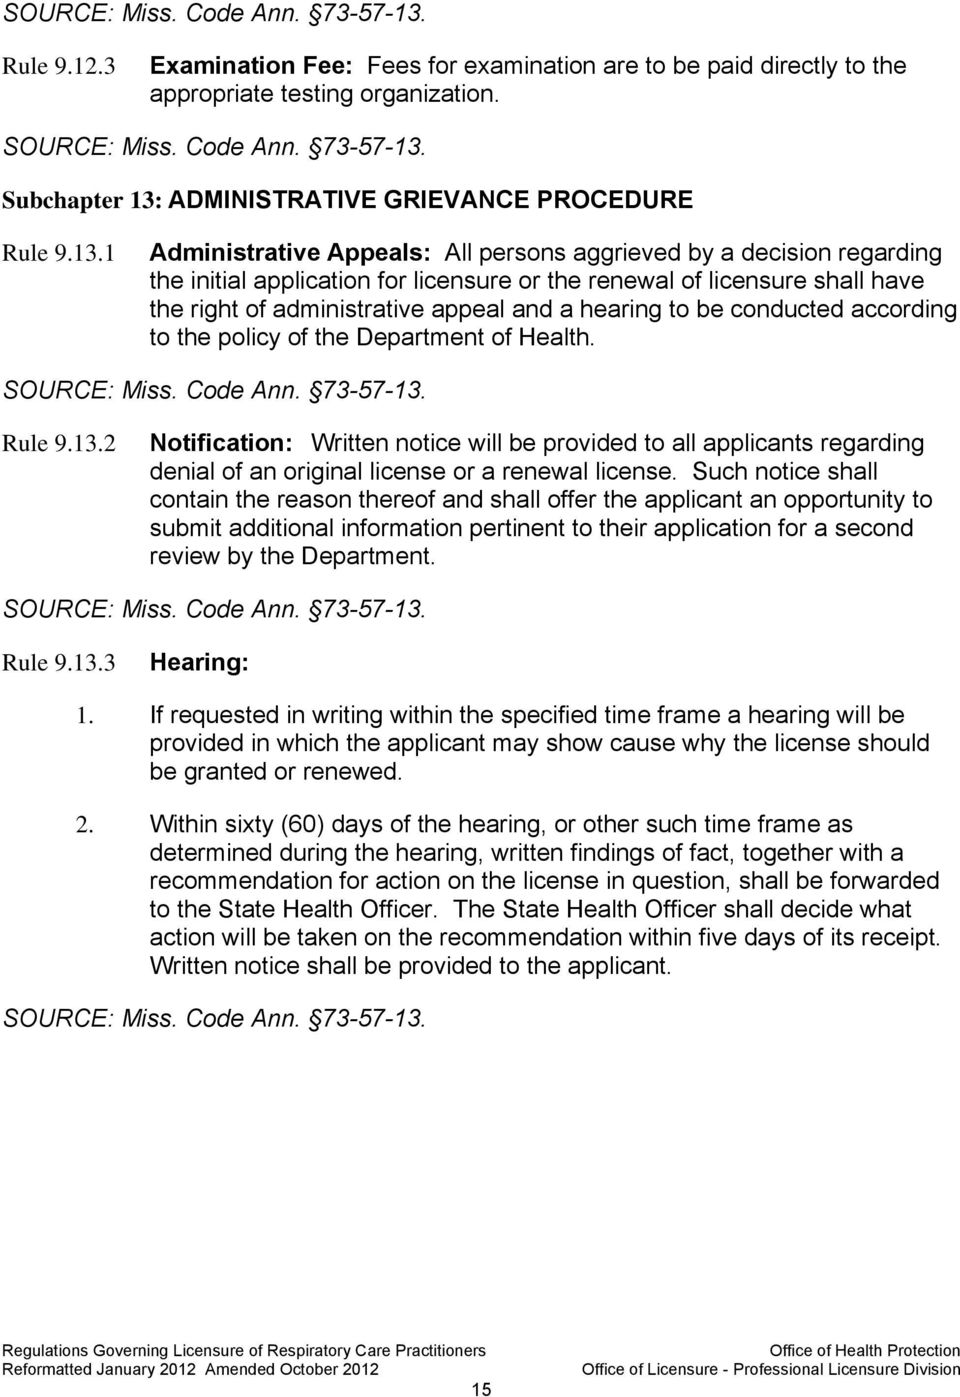 1 Administrative Appeals: All persons aggrieved by a decision regarding the initial application for licensure or the renewal of licensure shall have the right of administrative appeal and a hearing